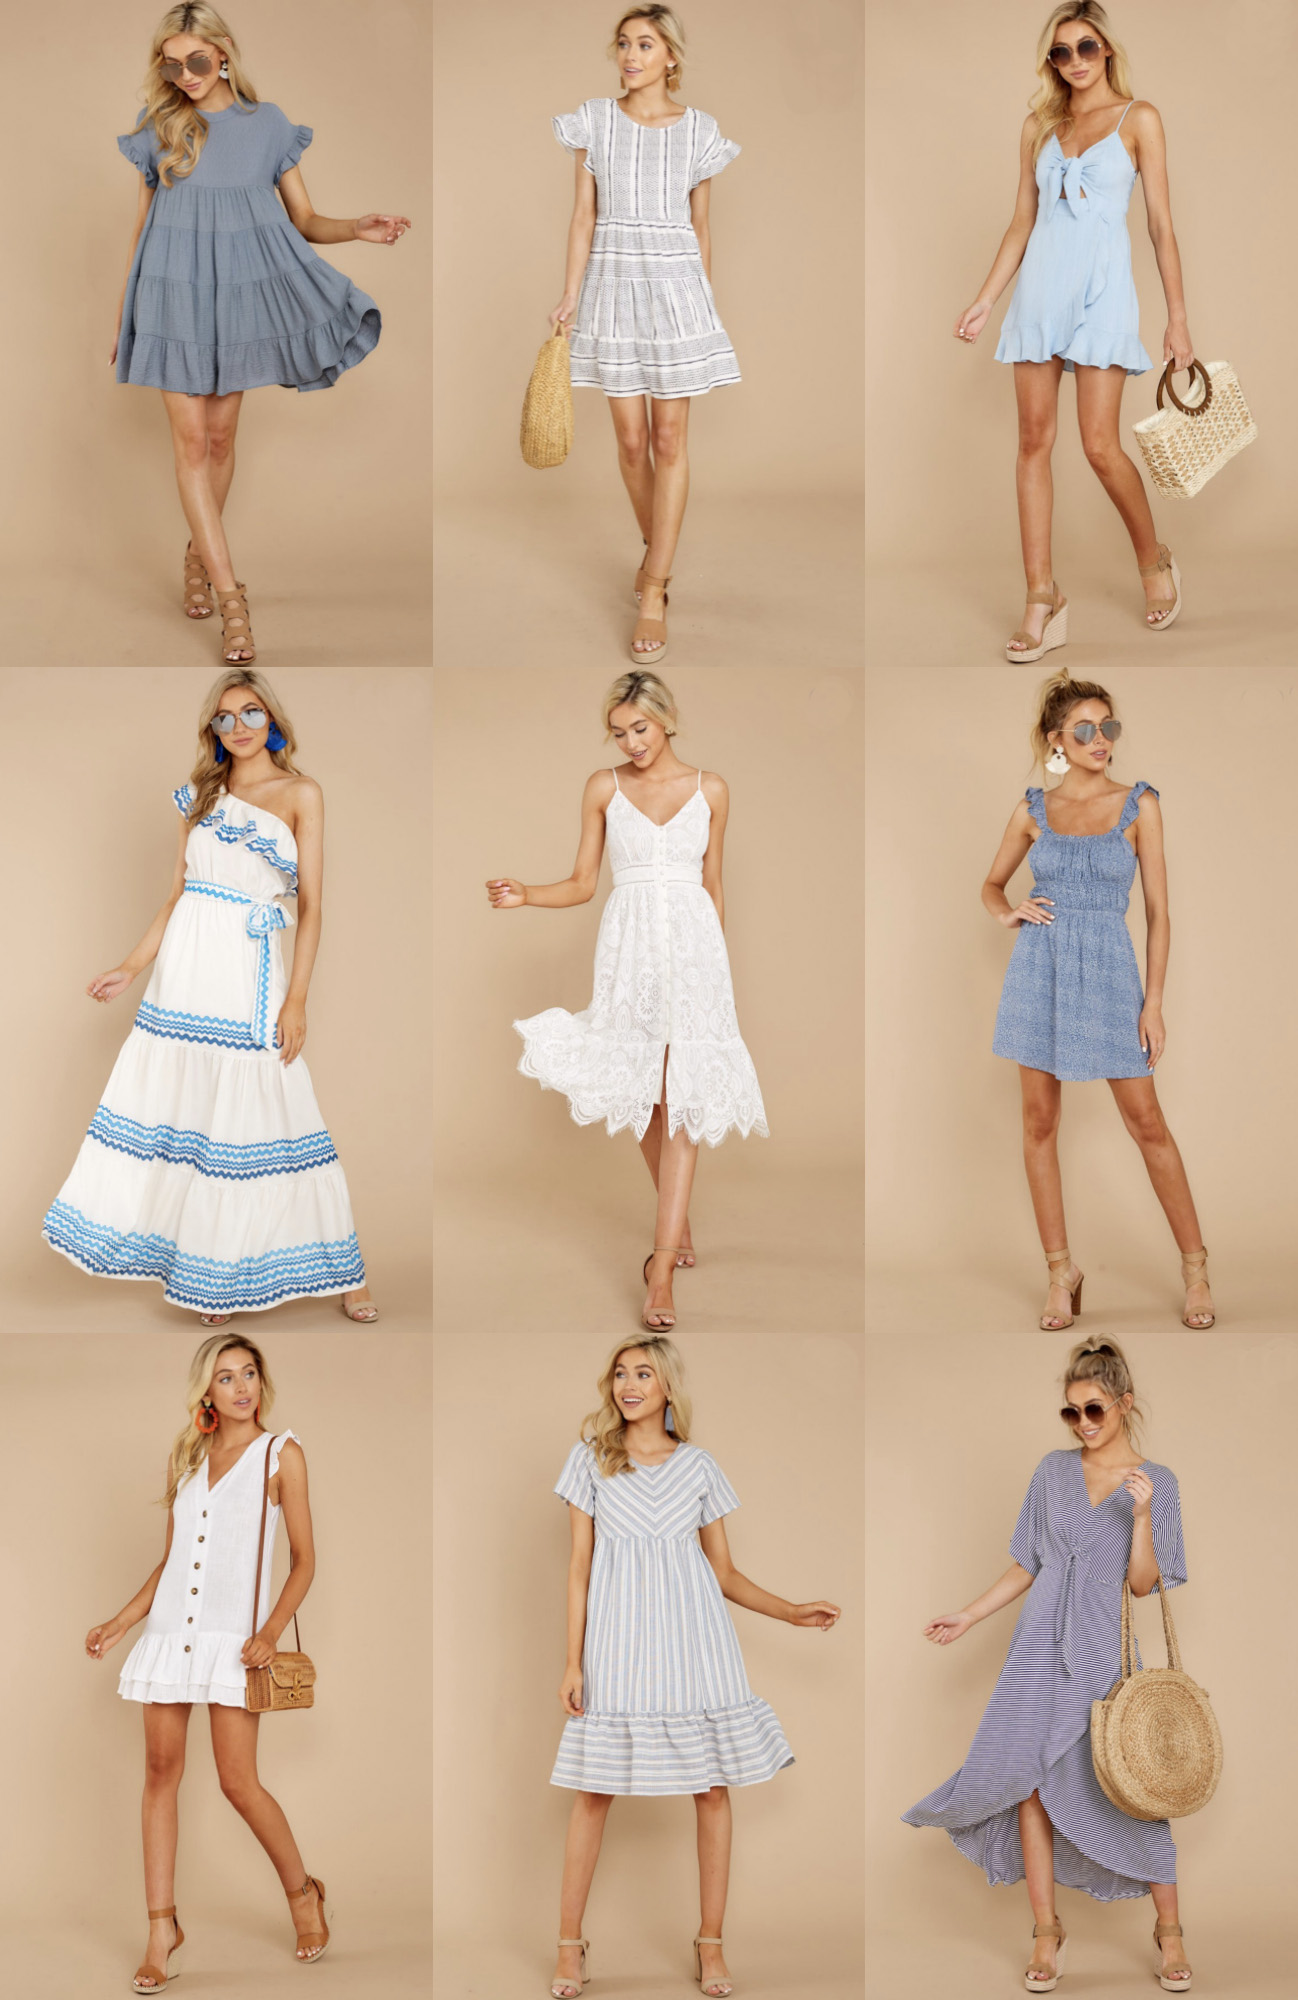 Fashion blogger Mash Elle | summer dresses | summer fashion | fashion for summer and hot weather